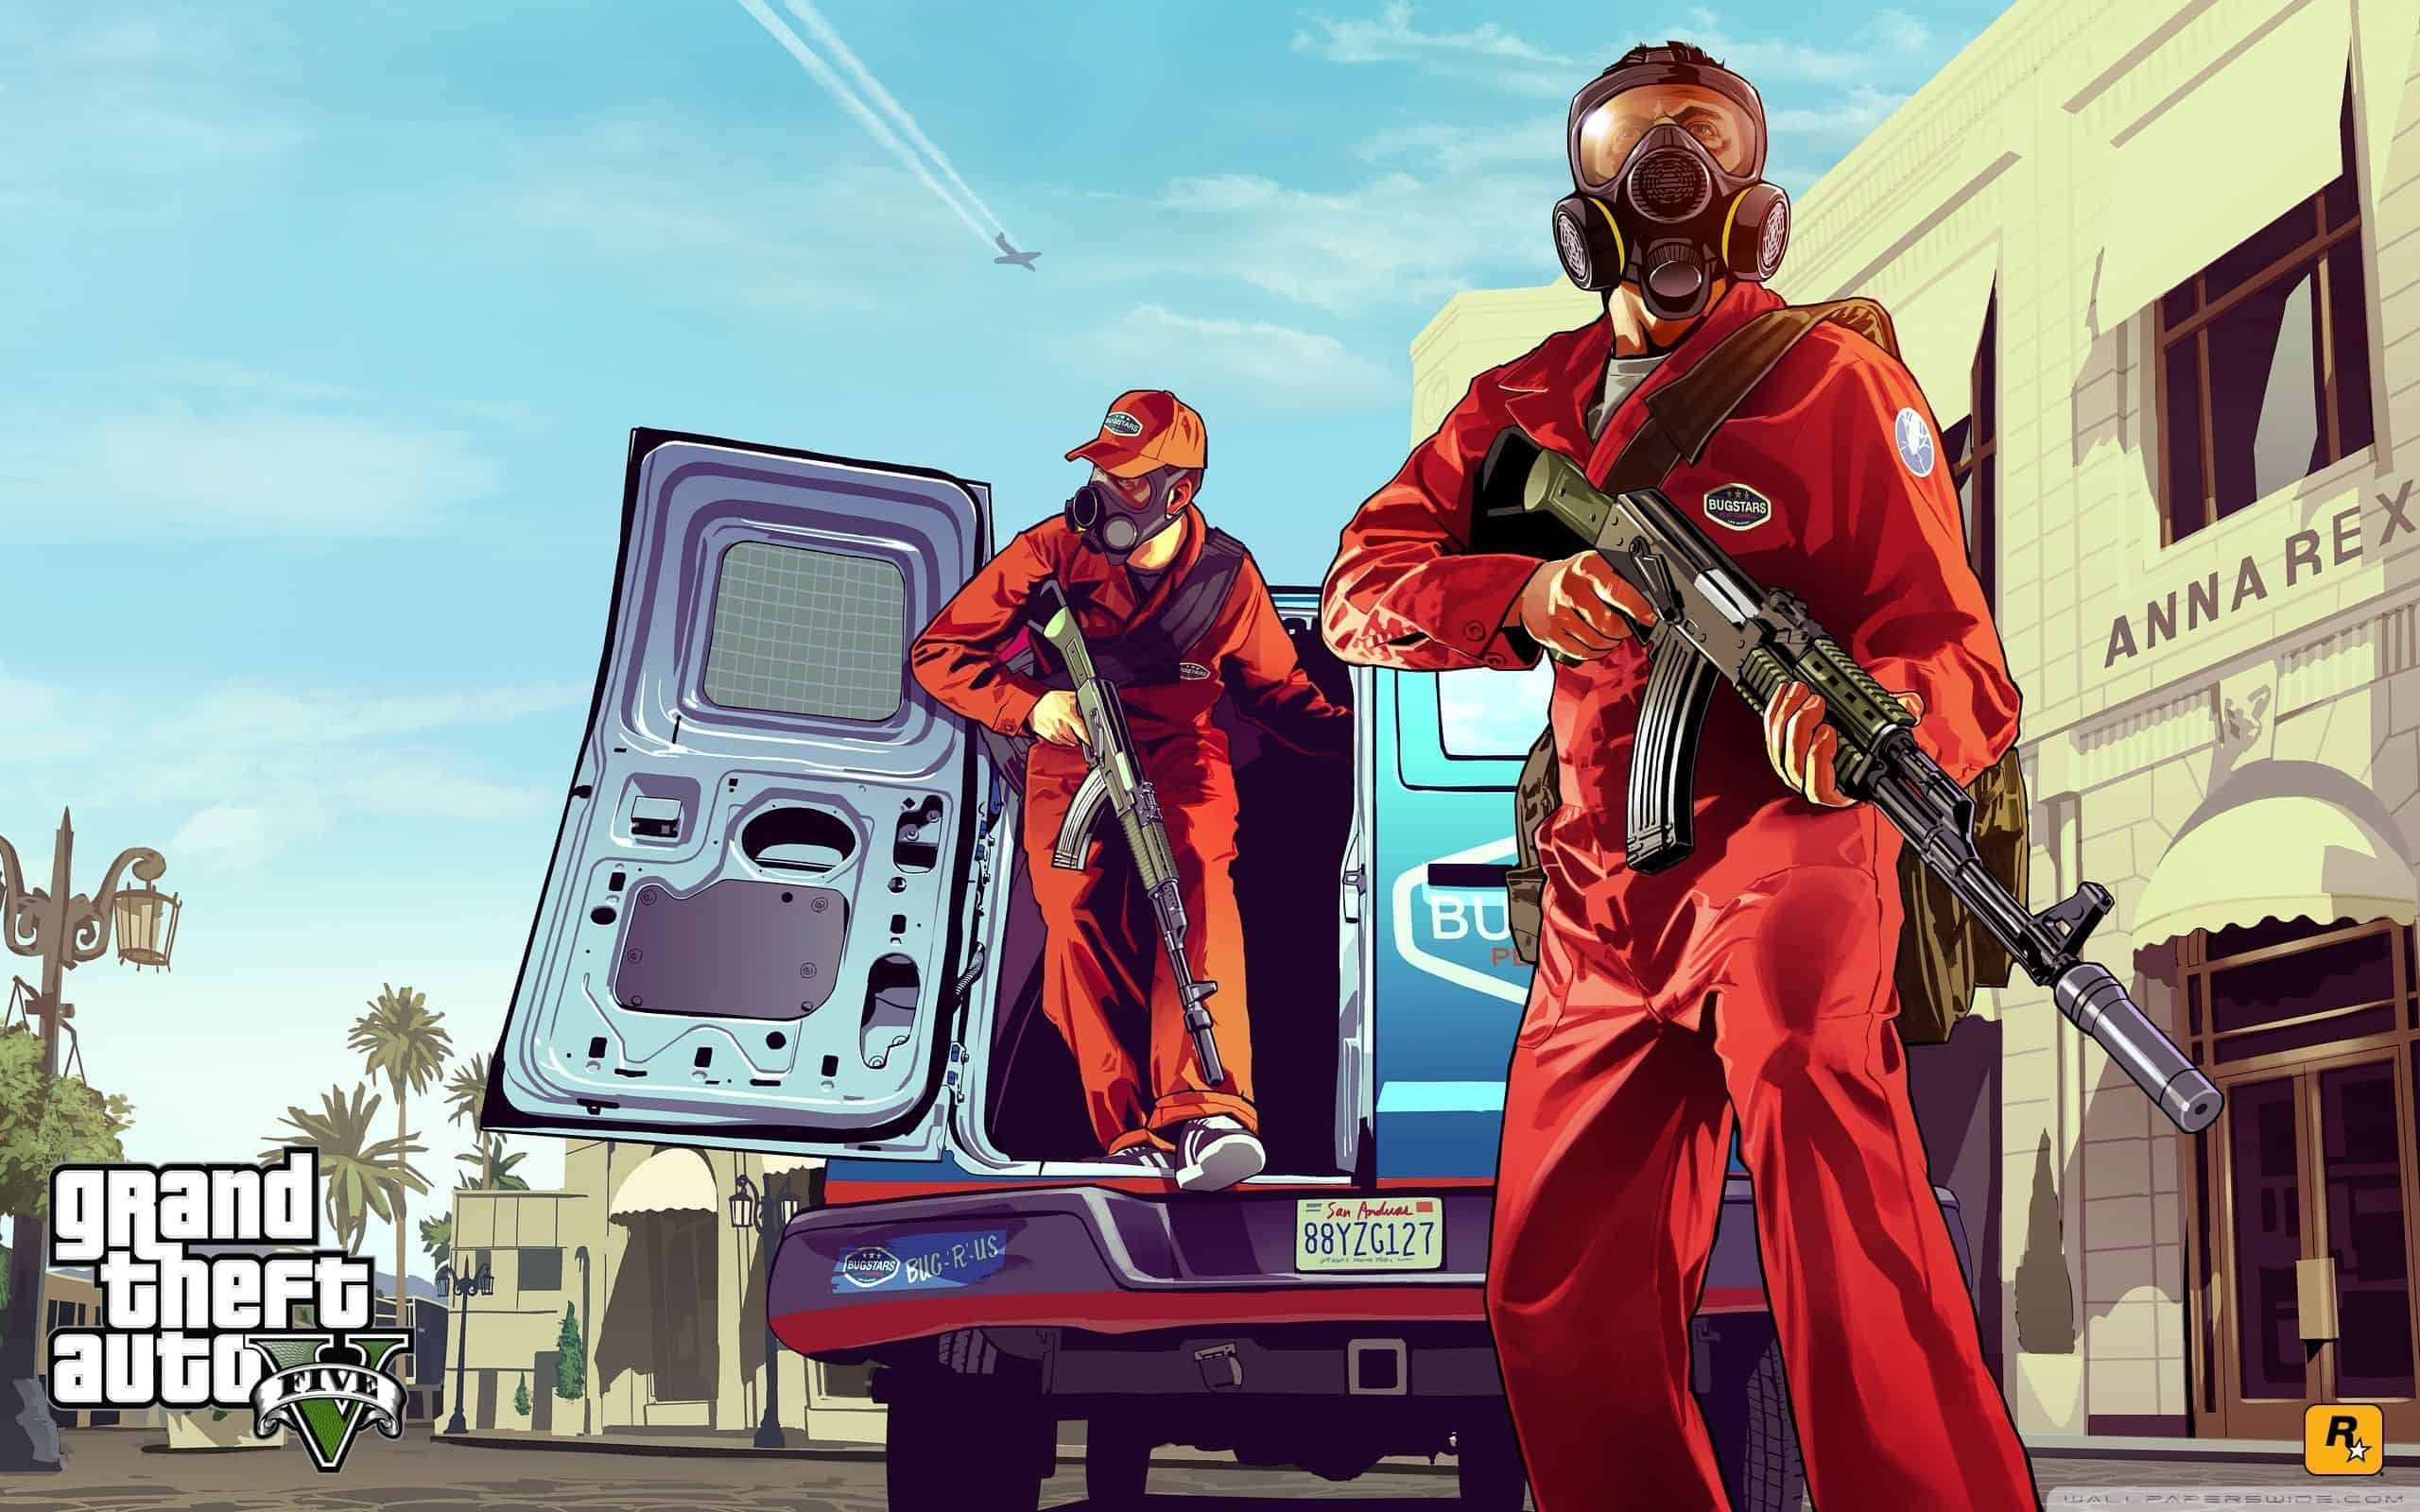 new-credible-gta-6-leaks-paint-quite-different-image